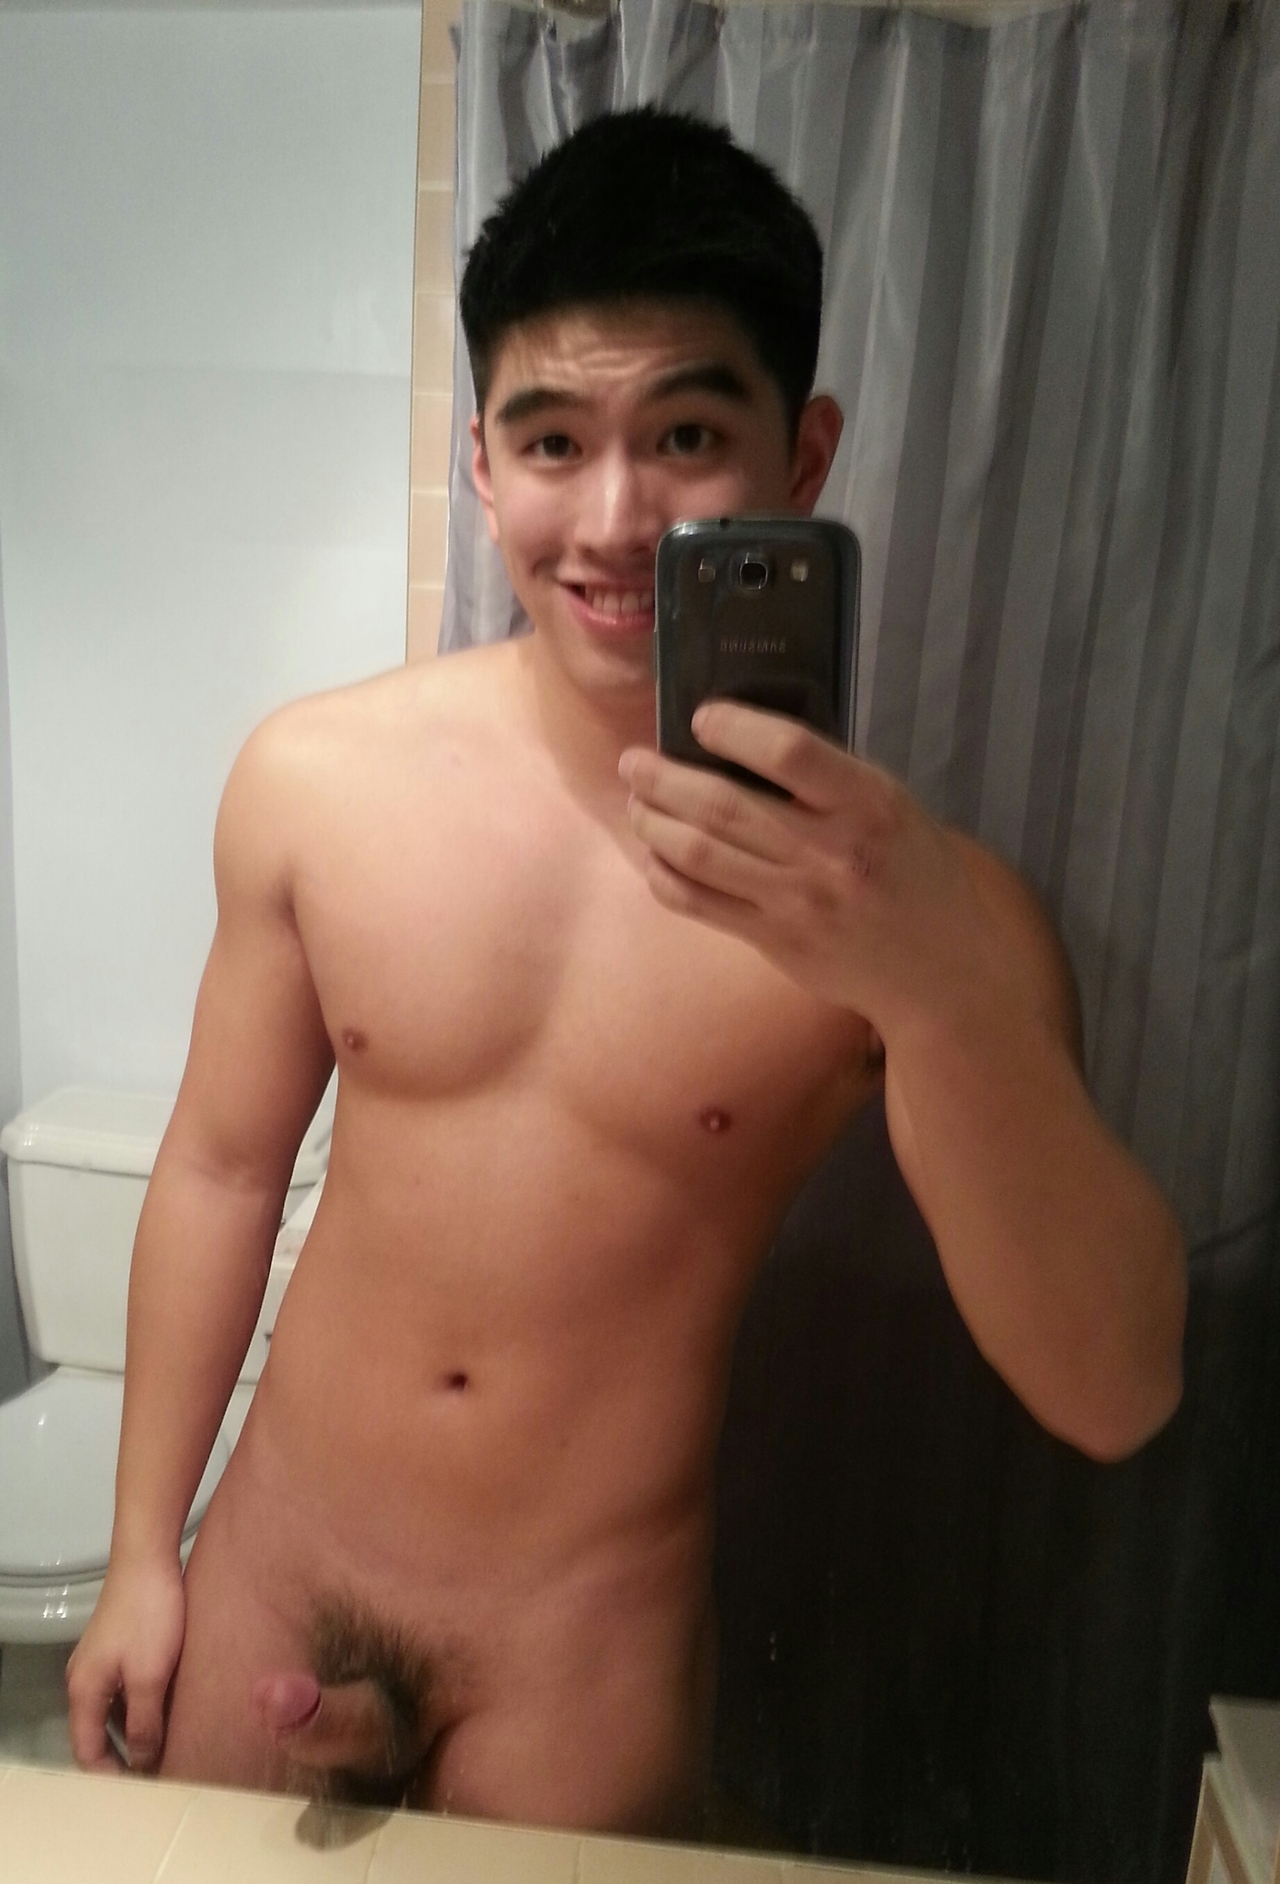 free picture of nude asian man should keep